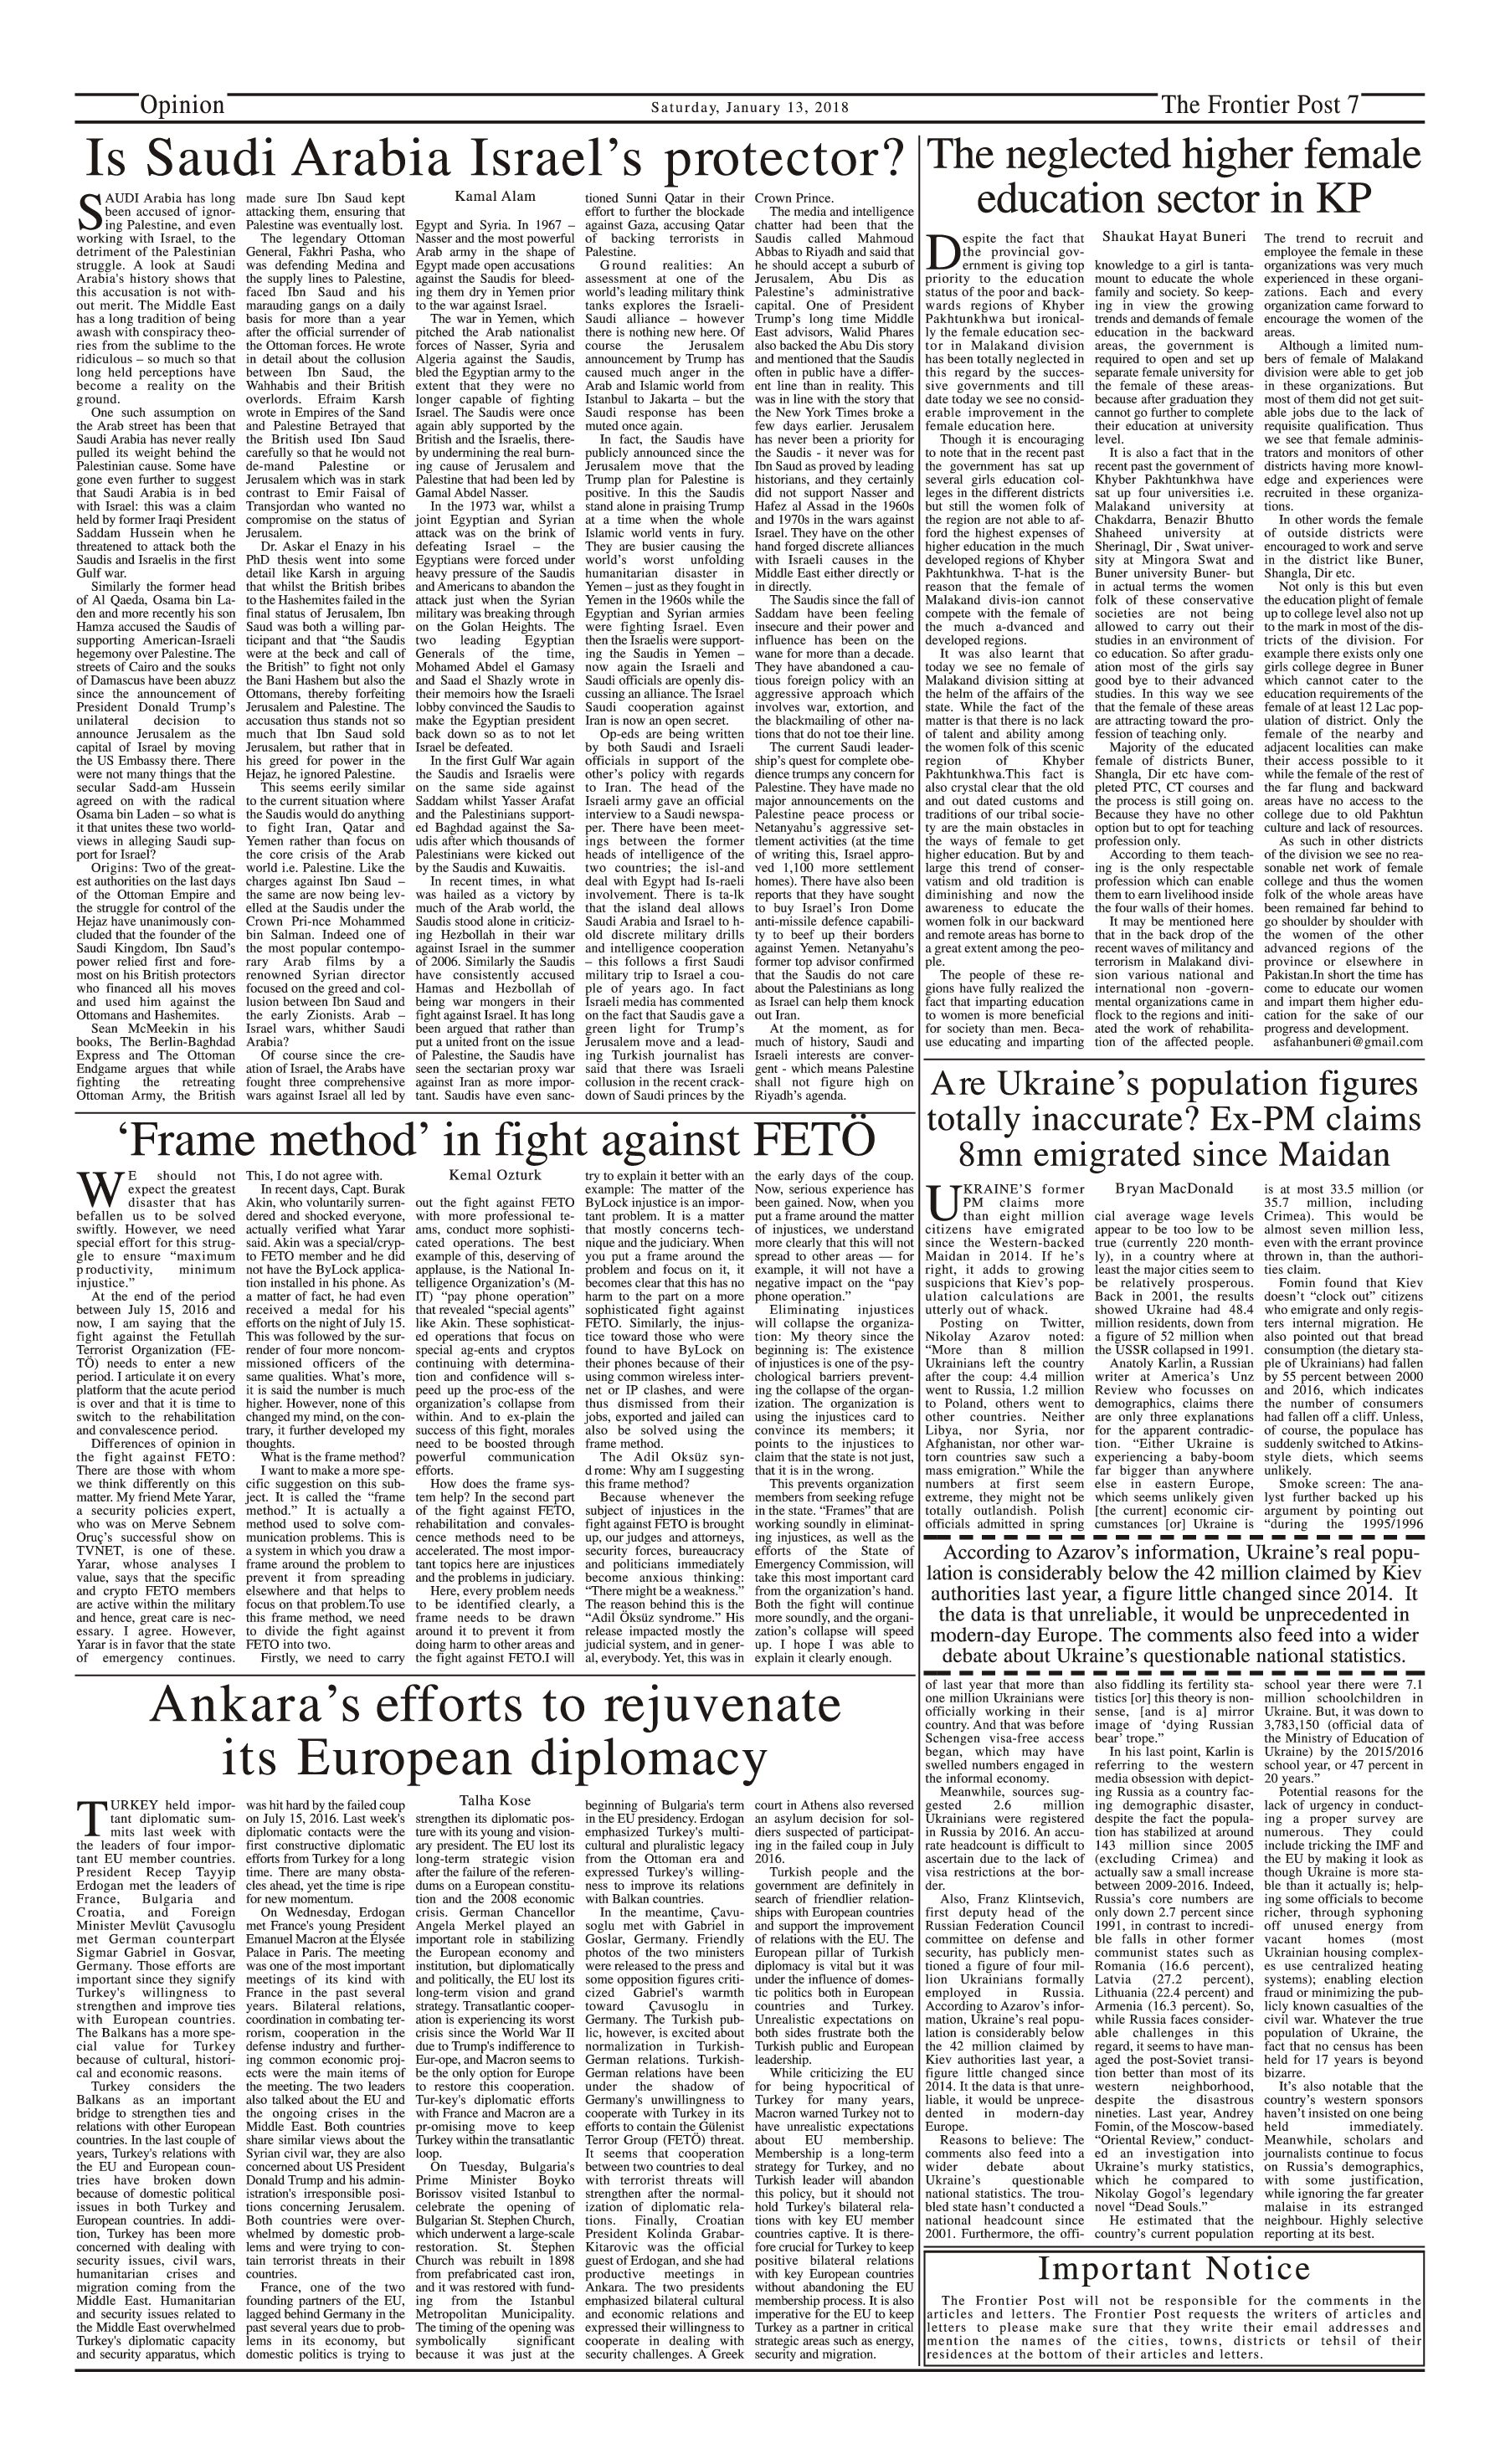 Opinion Page 13-1